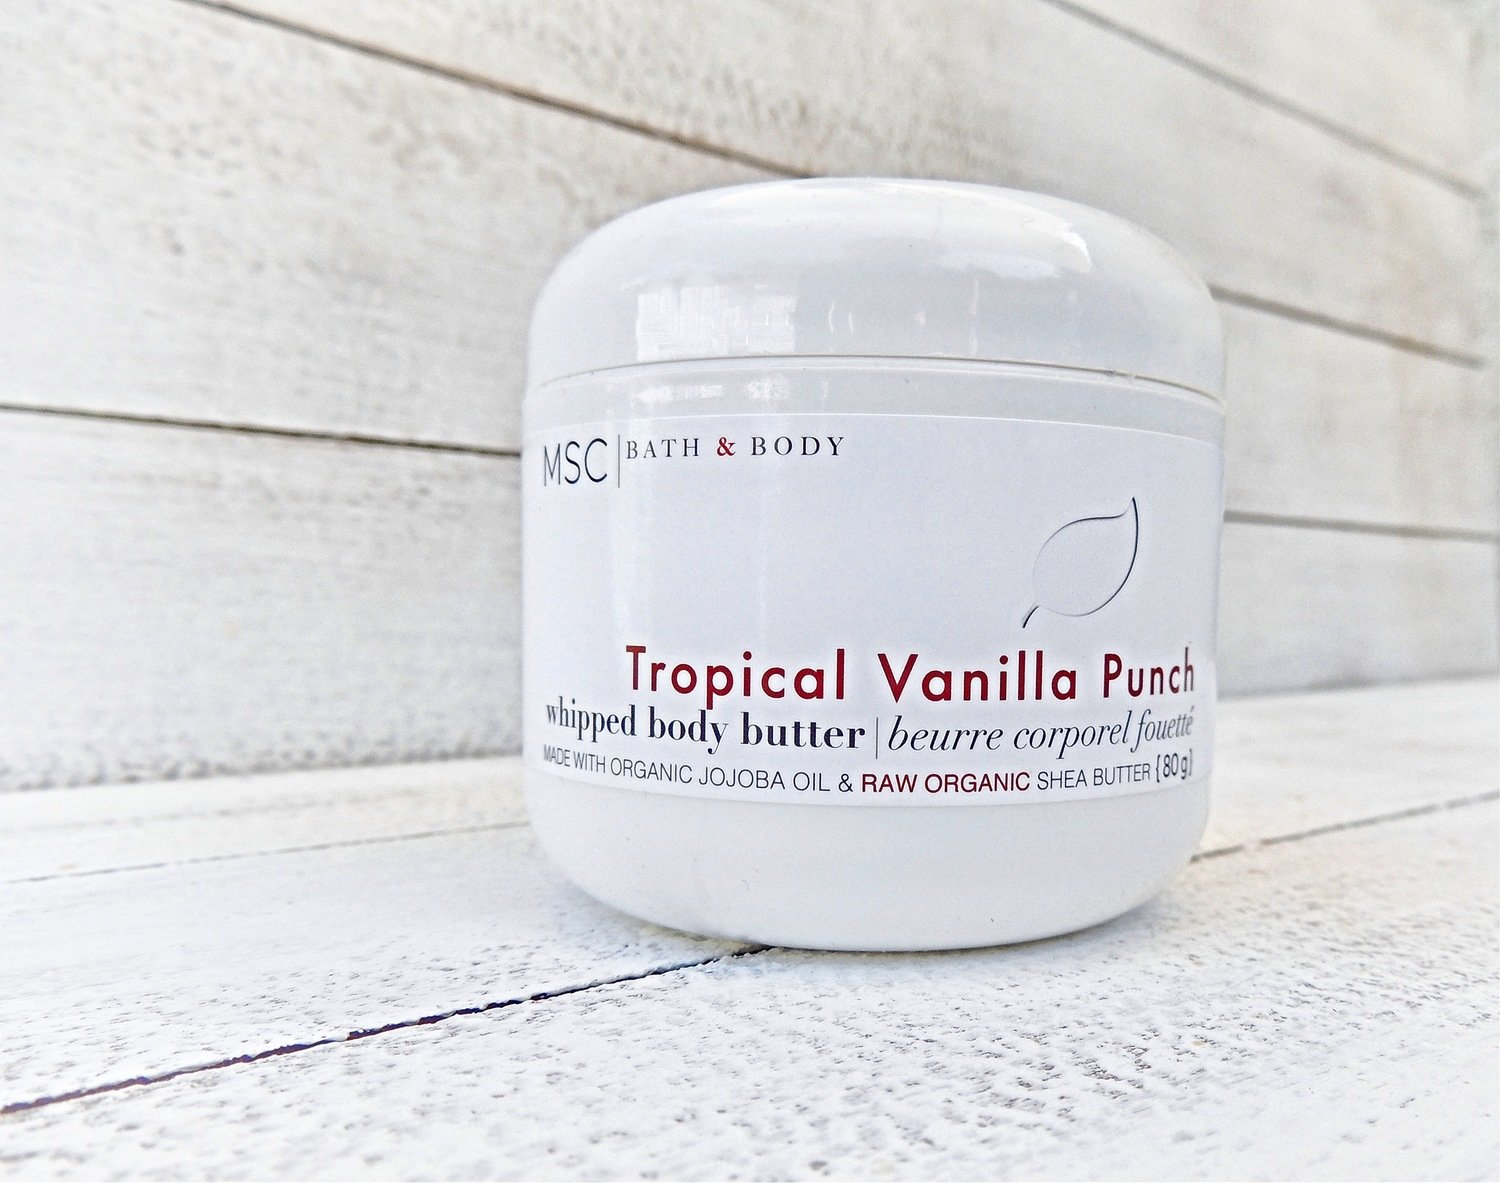 Tropical Vanilla Punch Whipped Body Butter